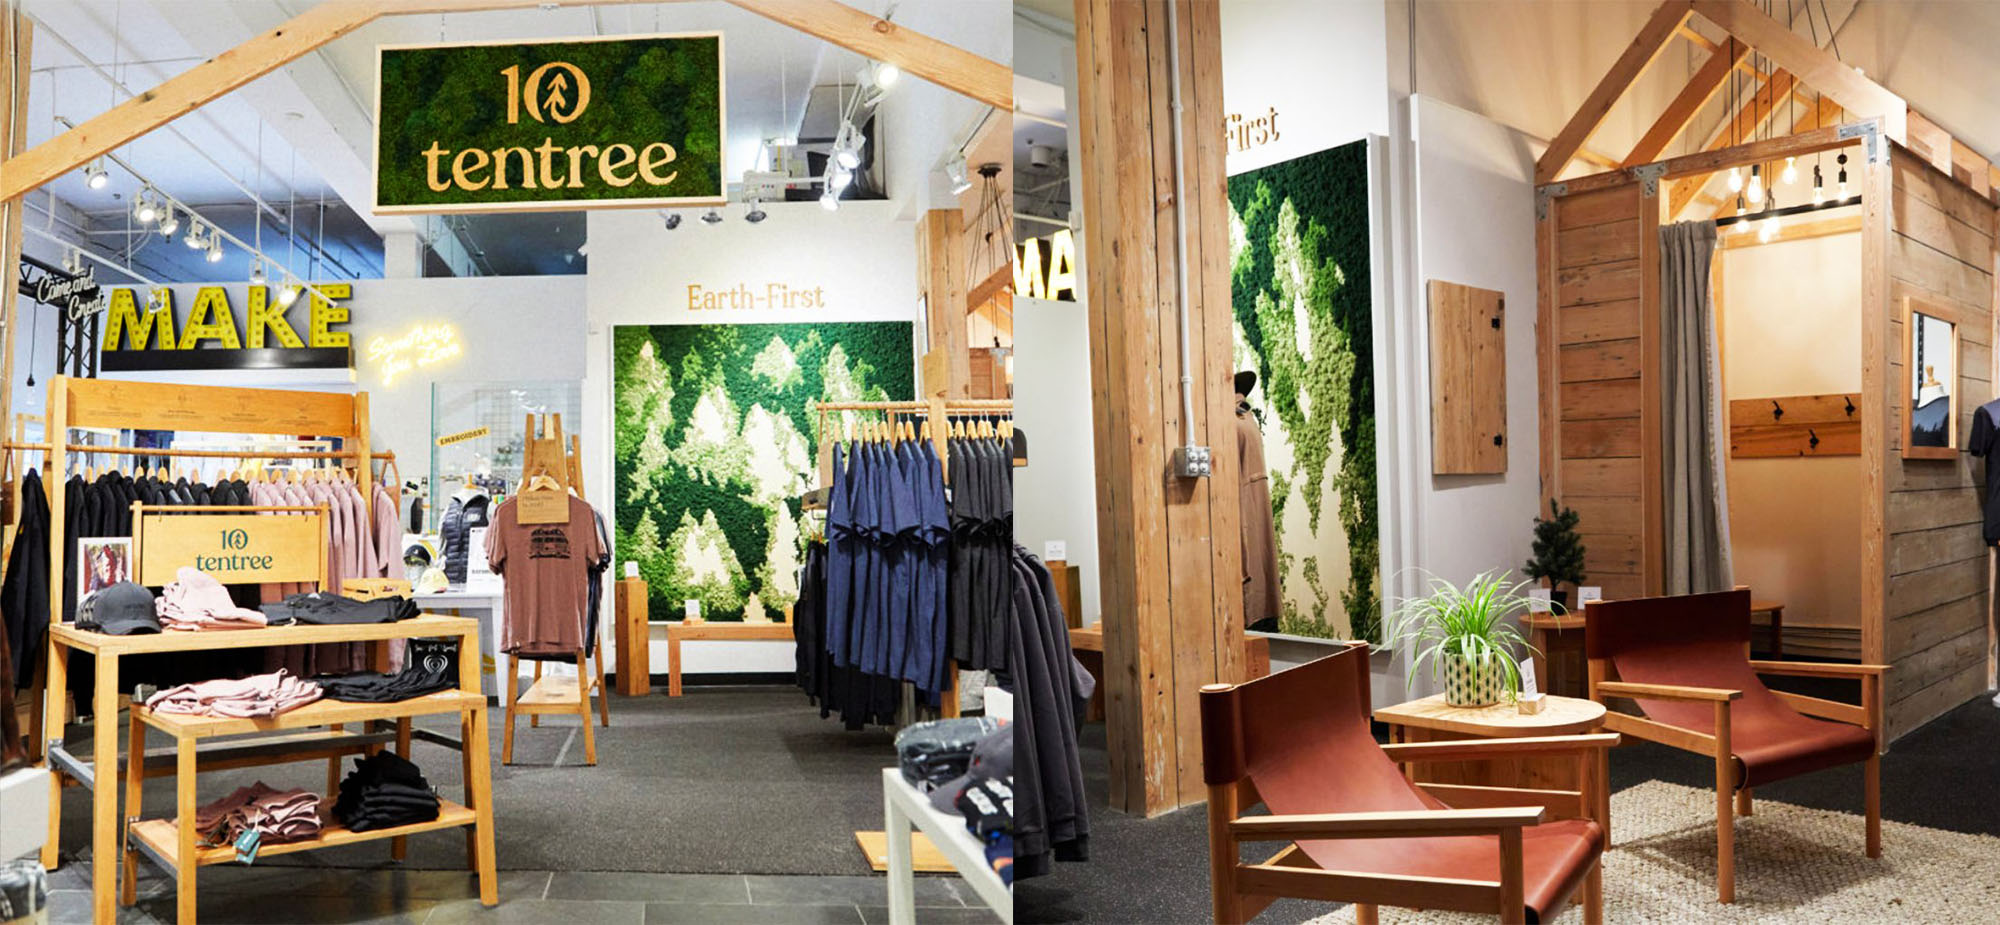 MAKE houses the first retail location of Tentree apparel